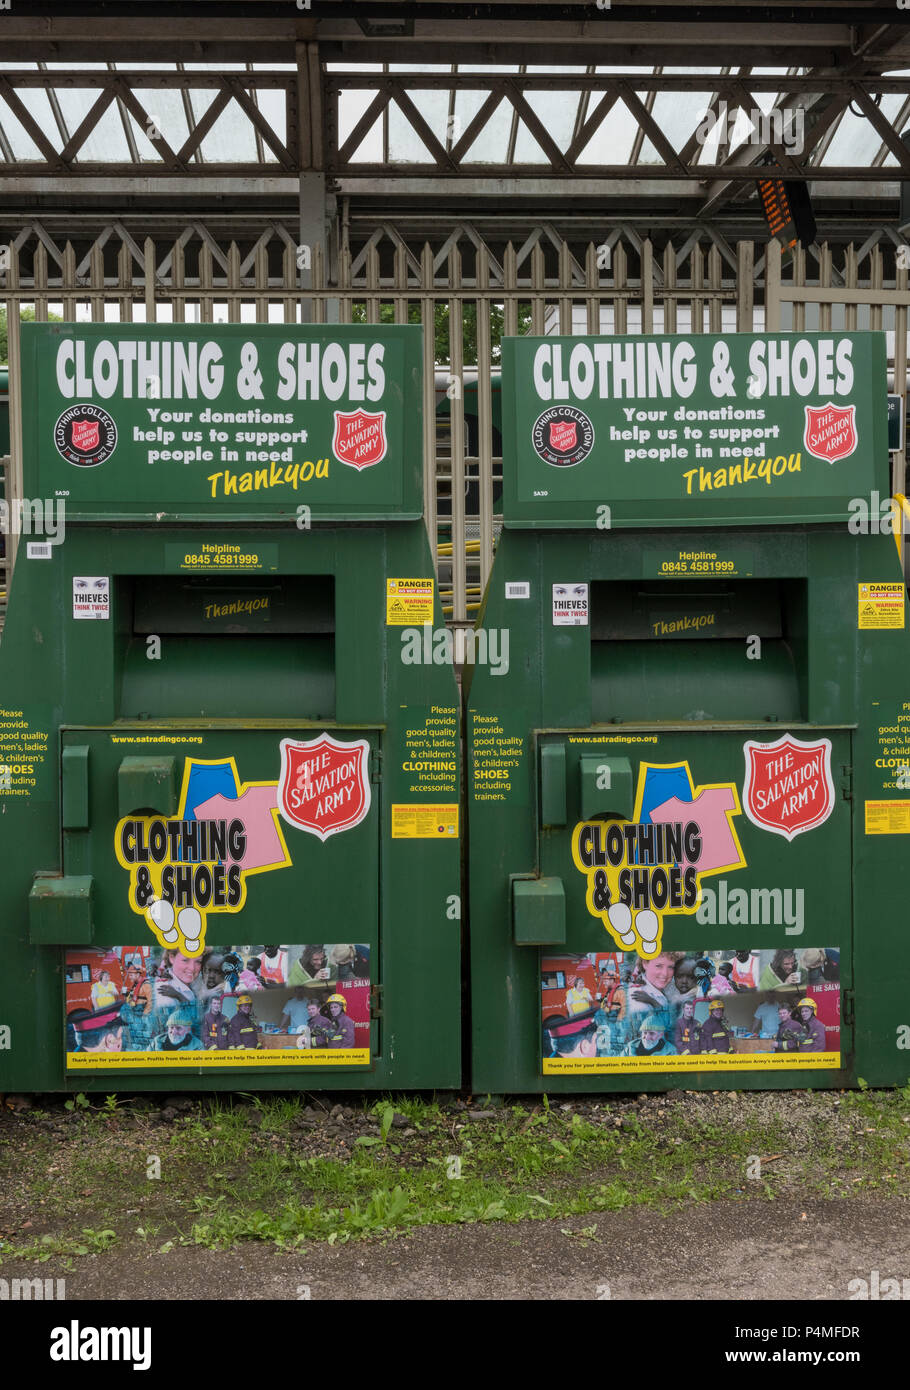 charity recycling bins - Stock Image